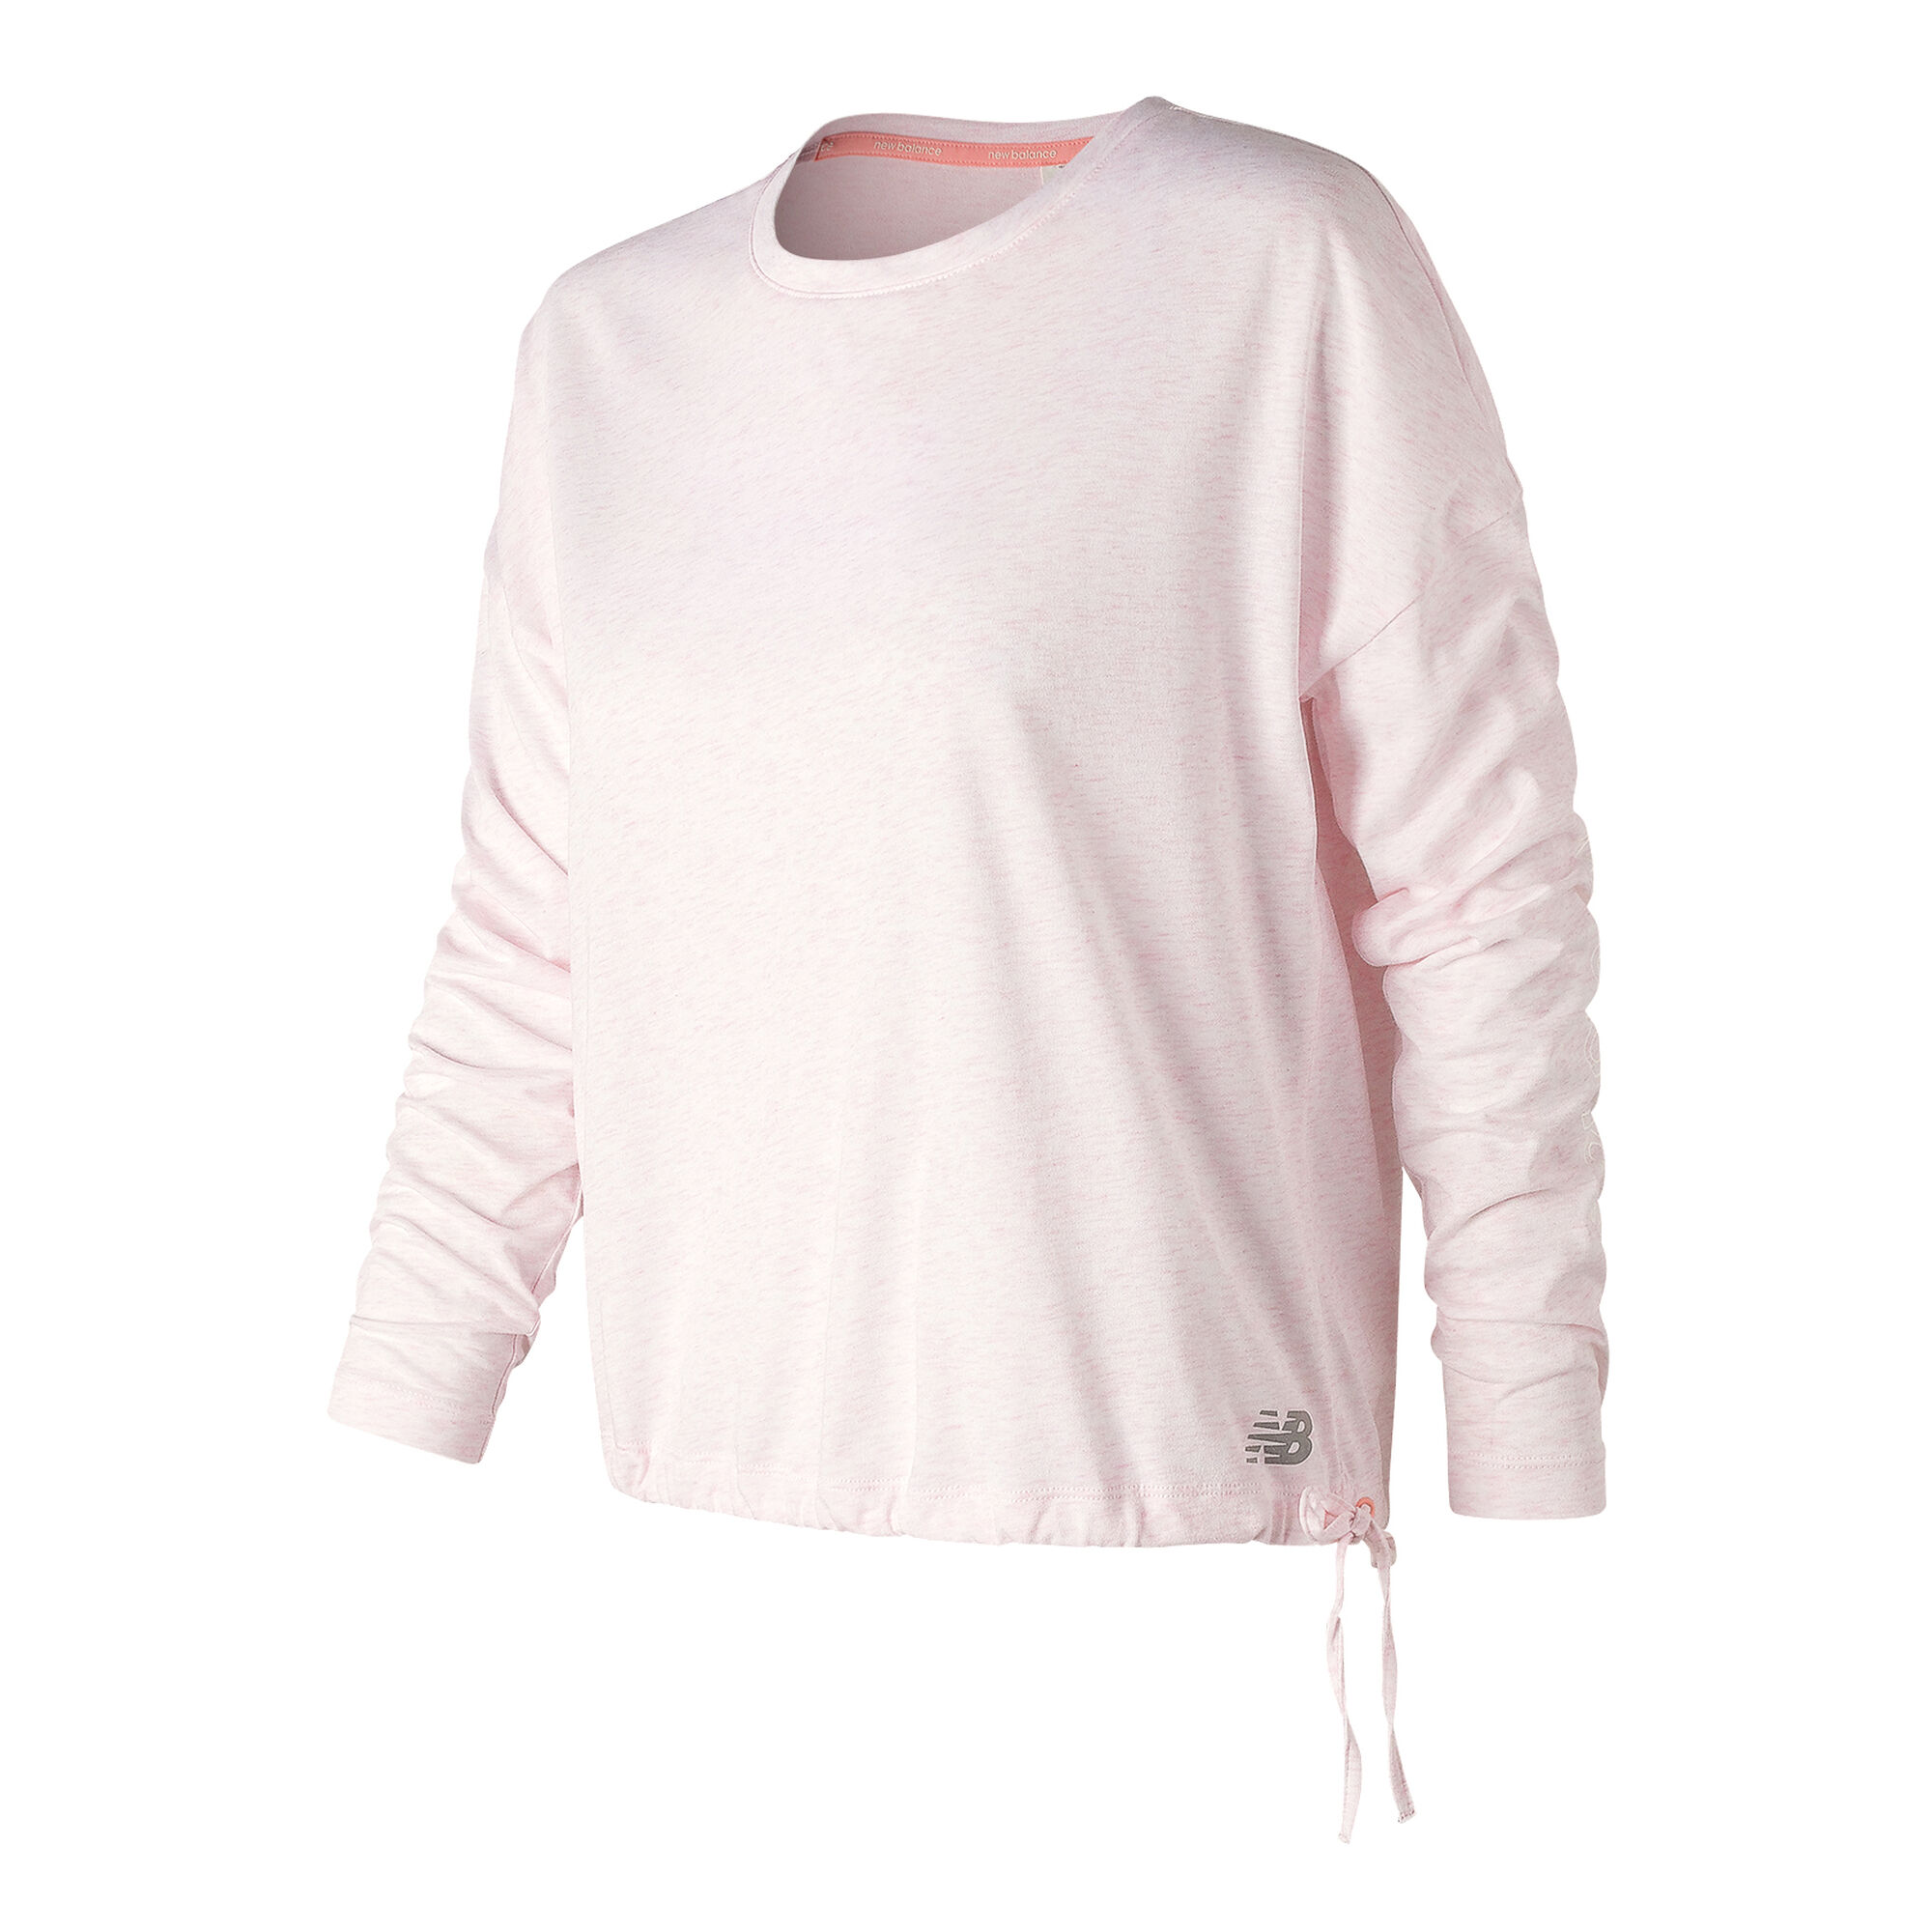 2f39893c6d9d7 buy New Balance Heather Tech Long Sleeve Women - Pink, Silver online ...